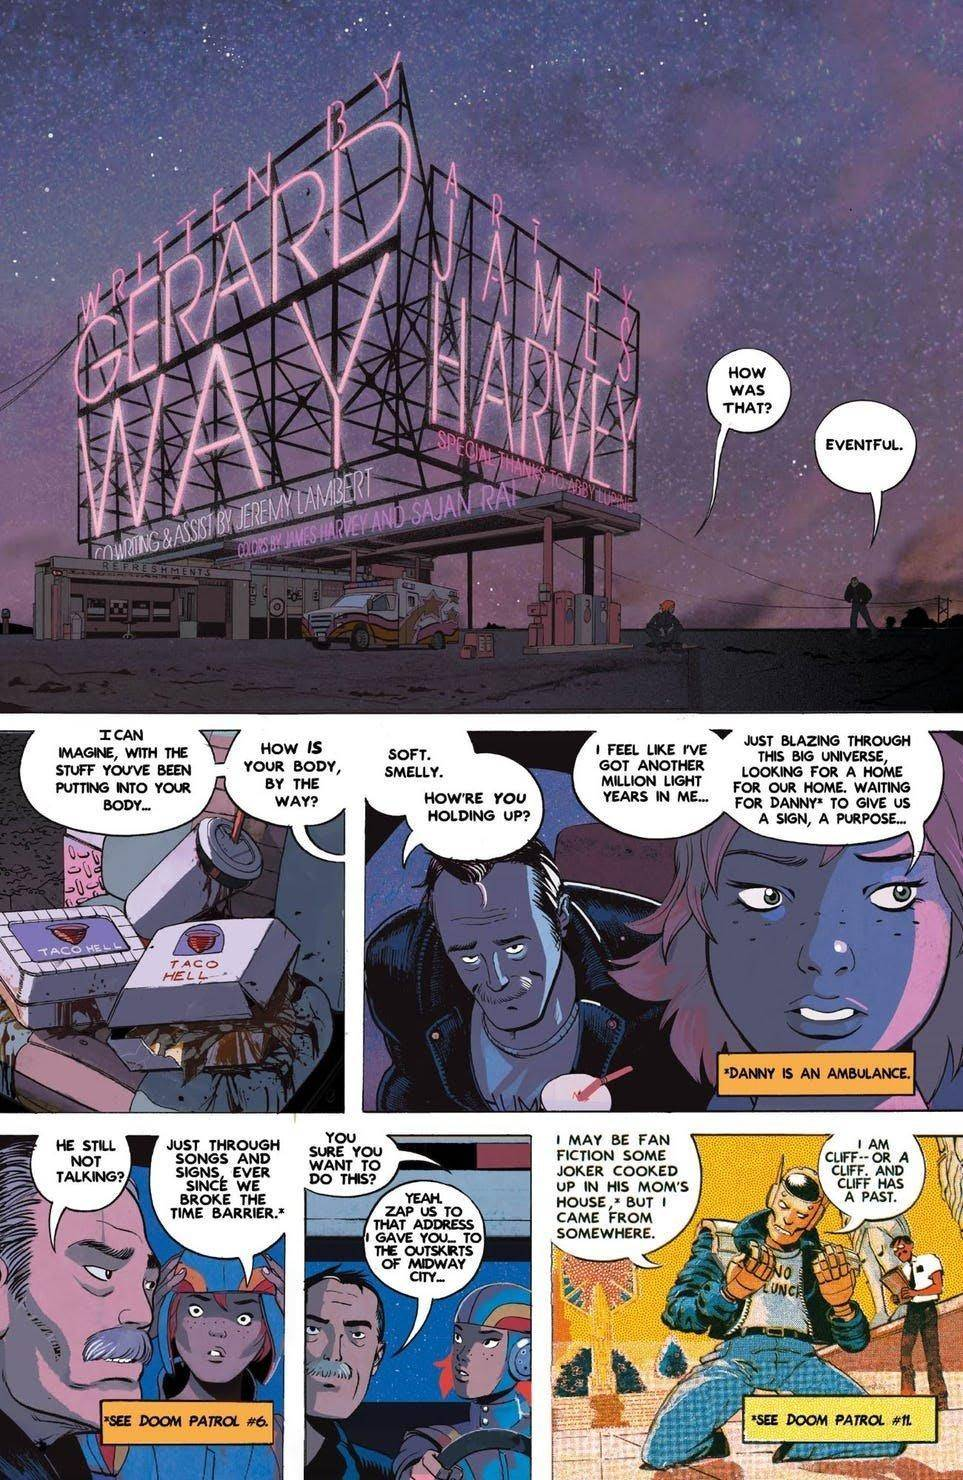 Doom Patrol: Weight of the Worlds # 1